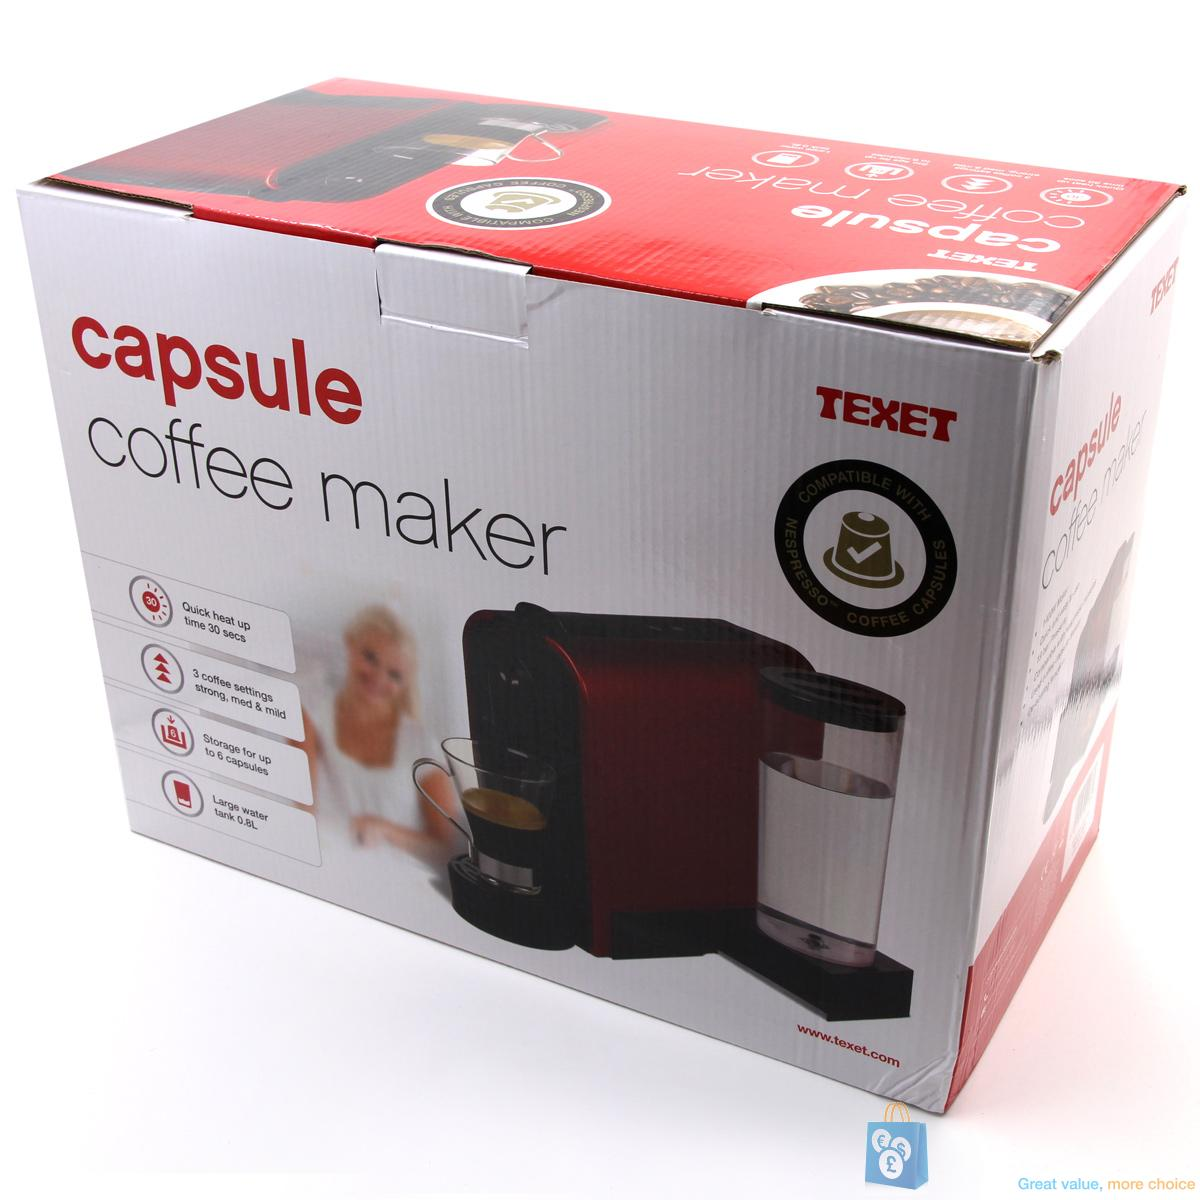 Nespresso Coffee Maker 220 Volts : Nespresso Compatible Capsule Coffee Maker by TEXET eBay